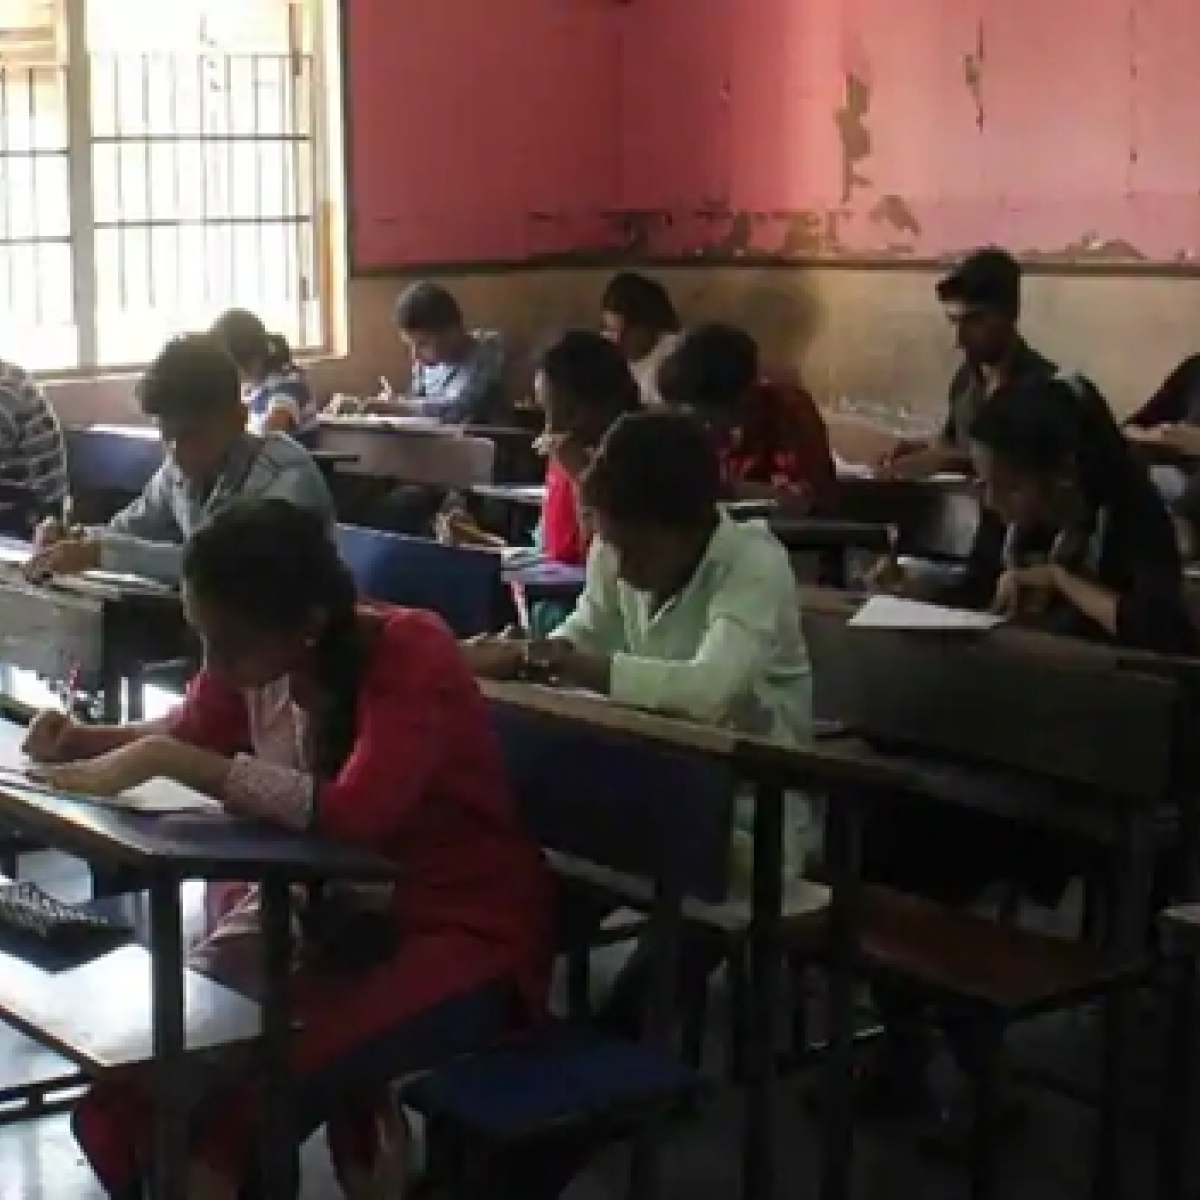 Madhya Pradesh: Reduce college exams duration from 3 hrs to 2 hrs, recommends vice chancellors' panel